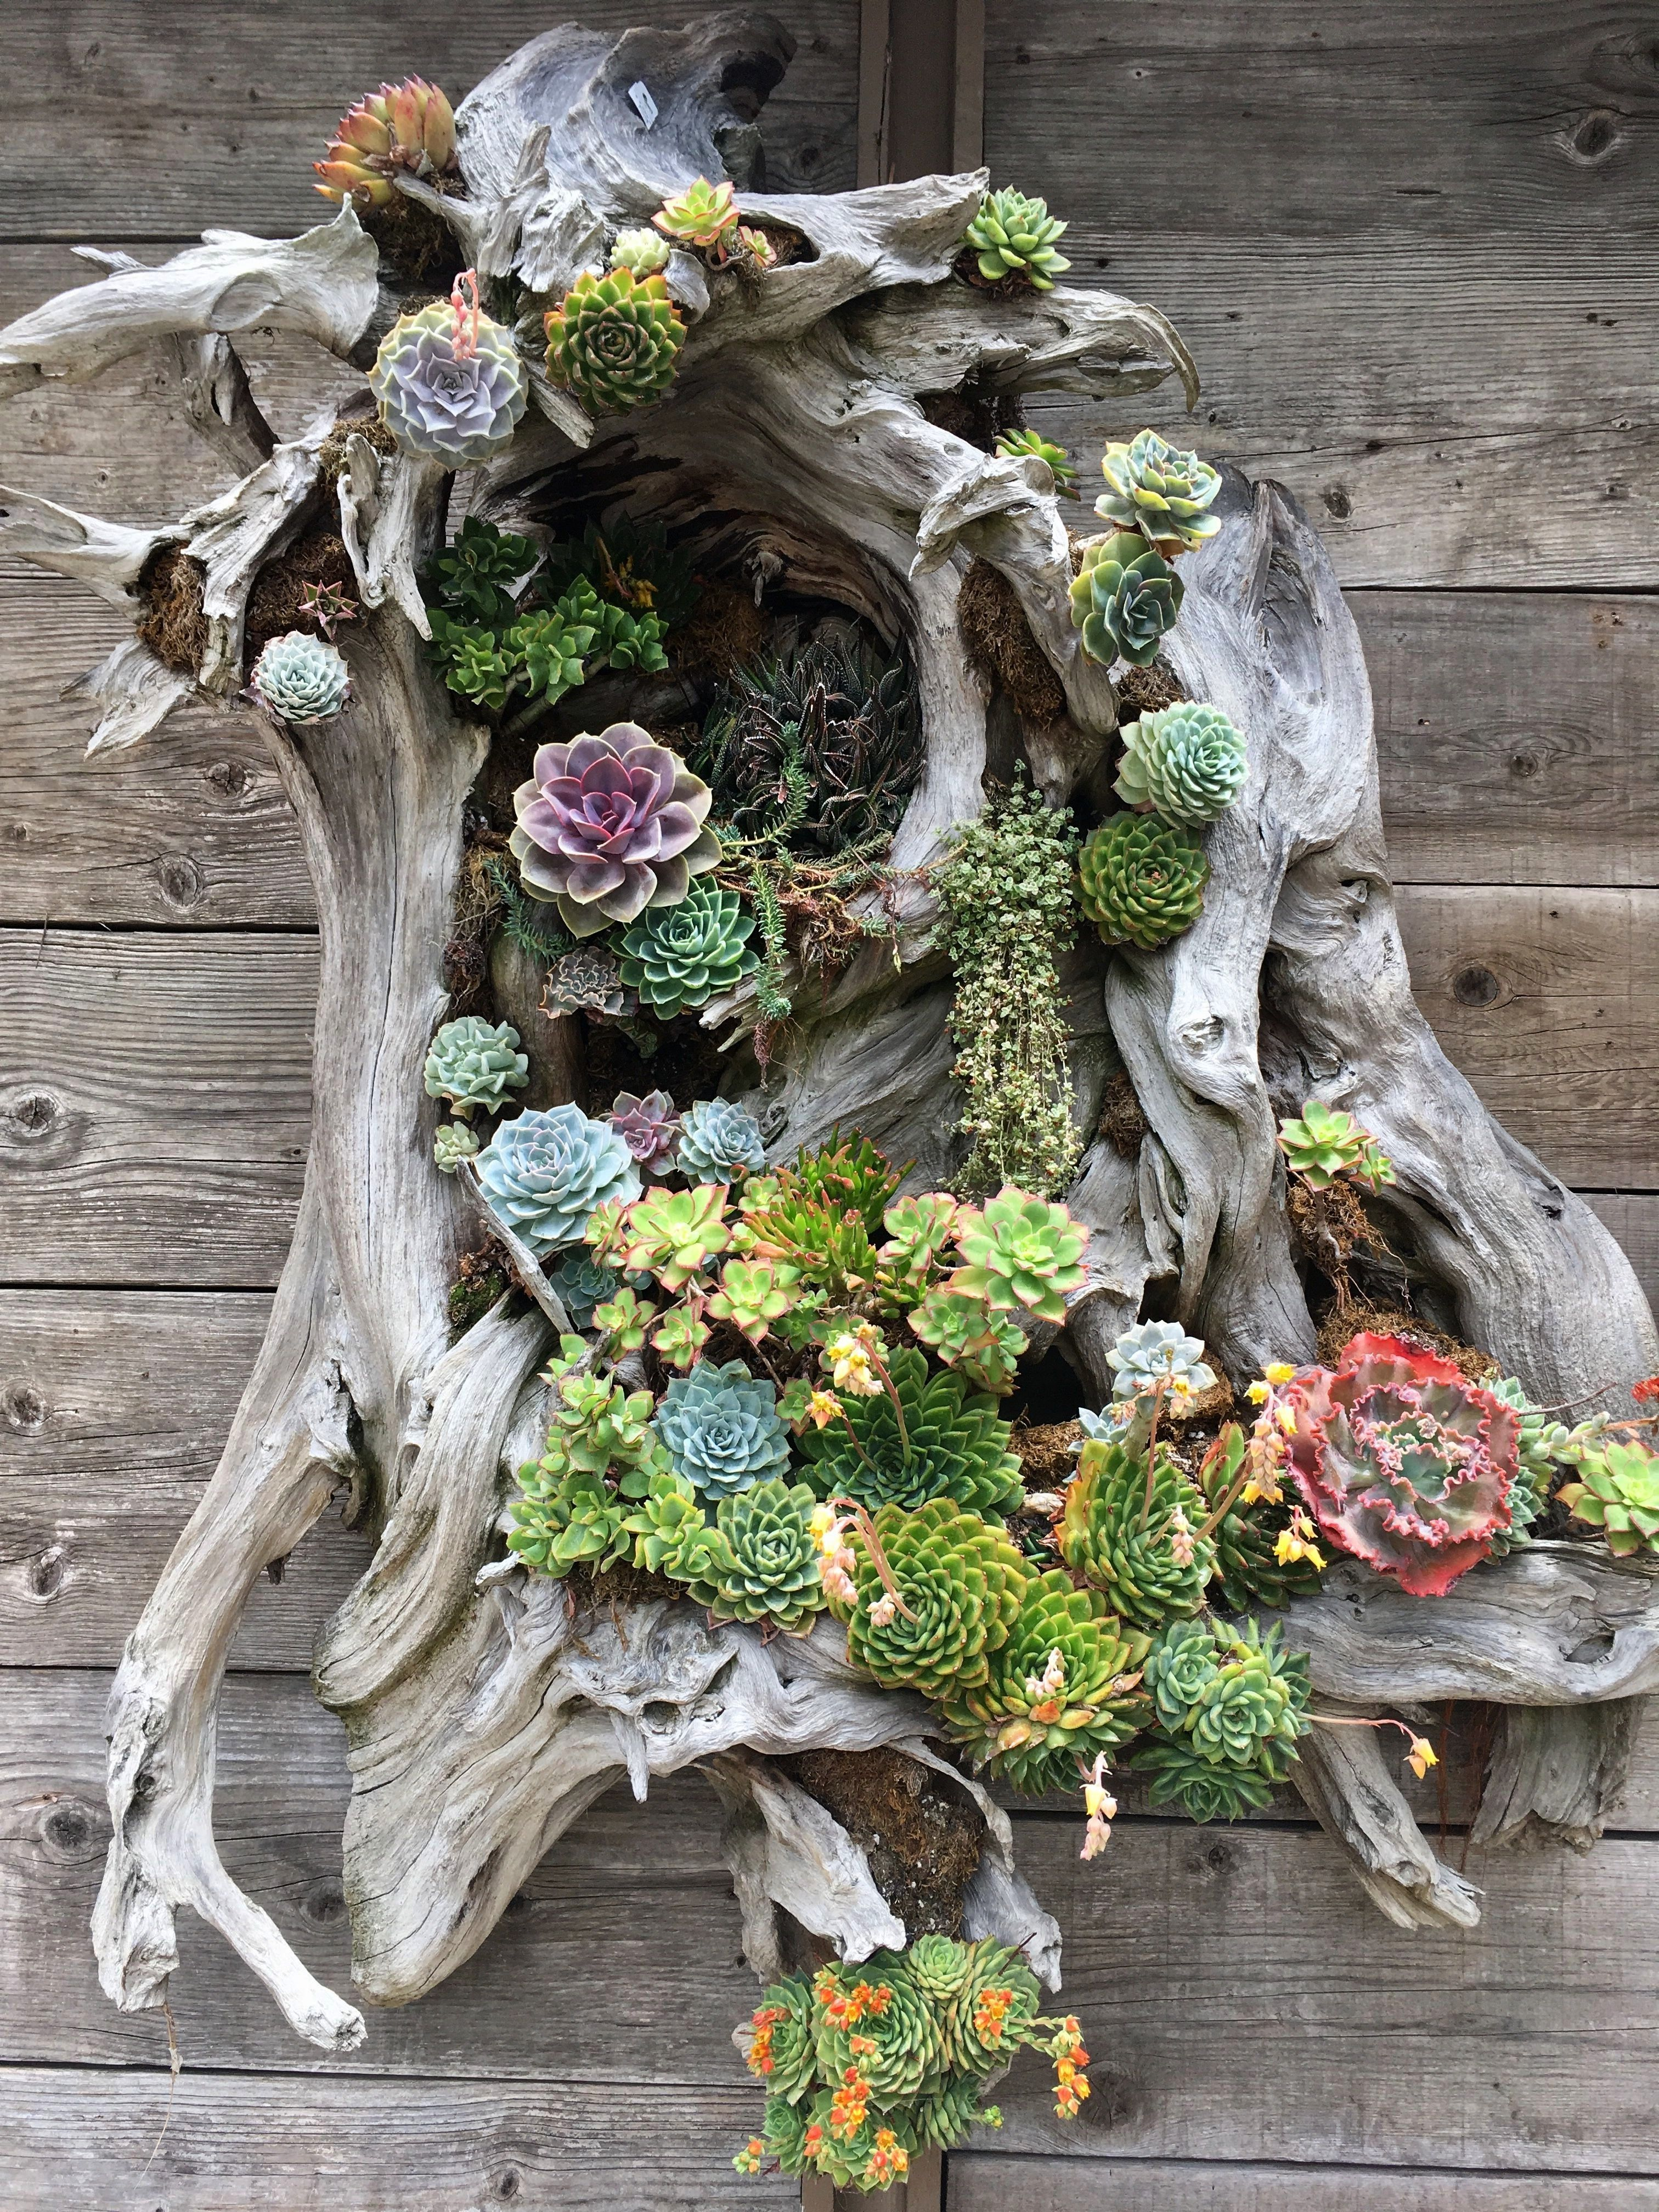 planters  free recycled pots and planters this is drift wood nailed together with sphagnum moss and succulents tucked in as wall artSucculent planters  free recycled pots...